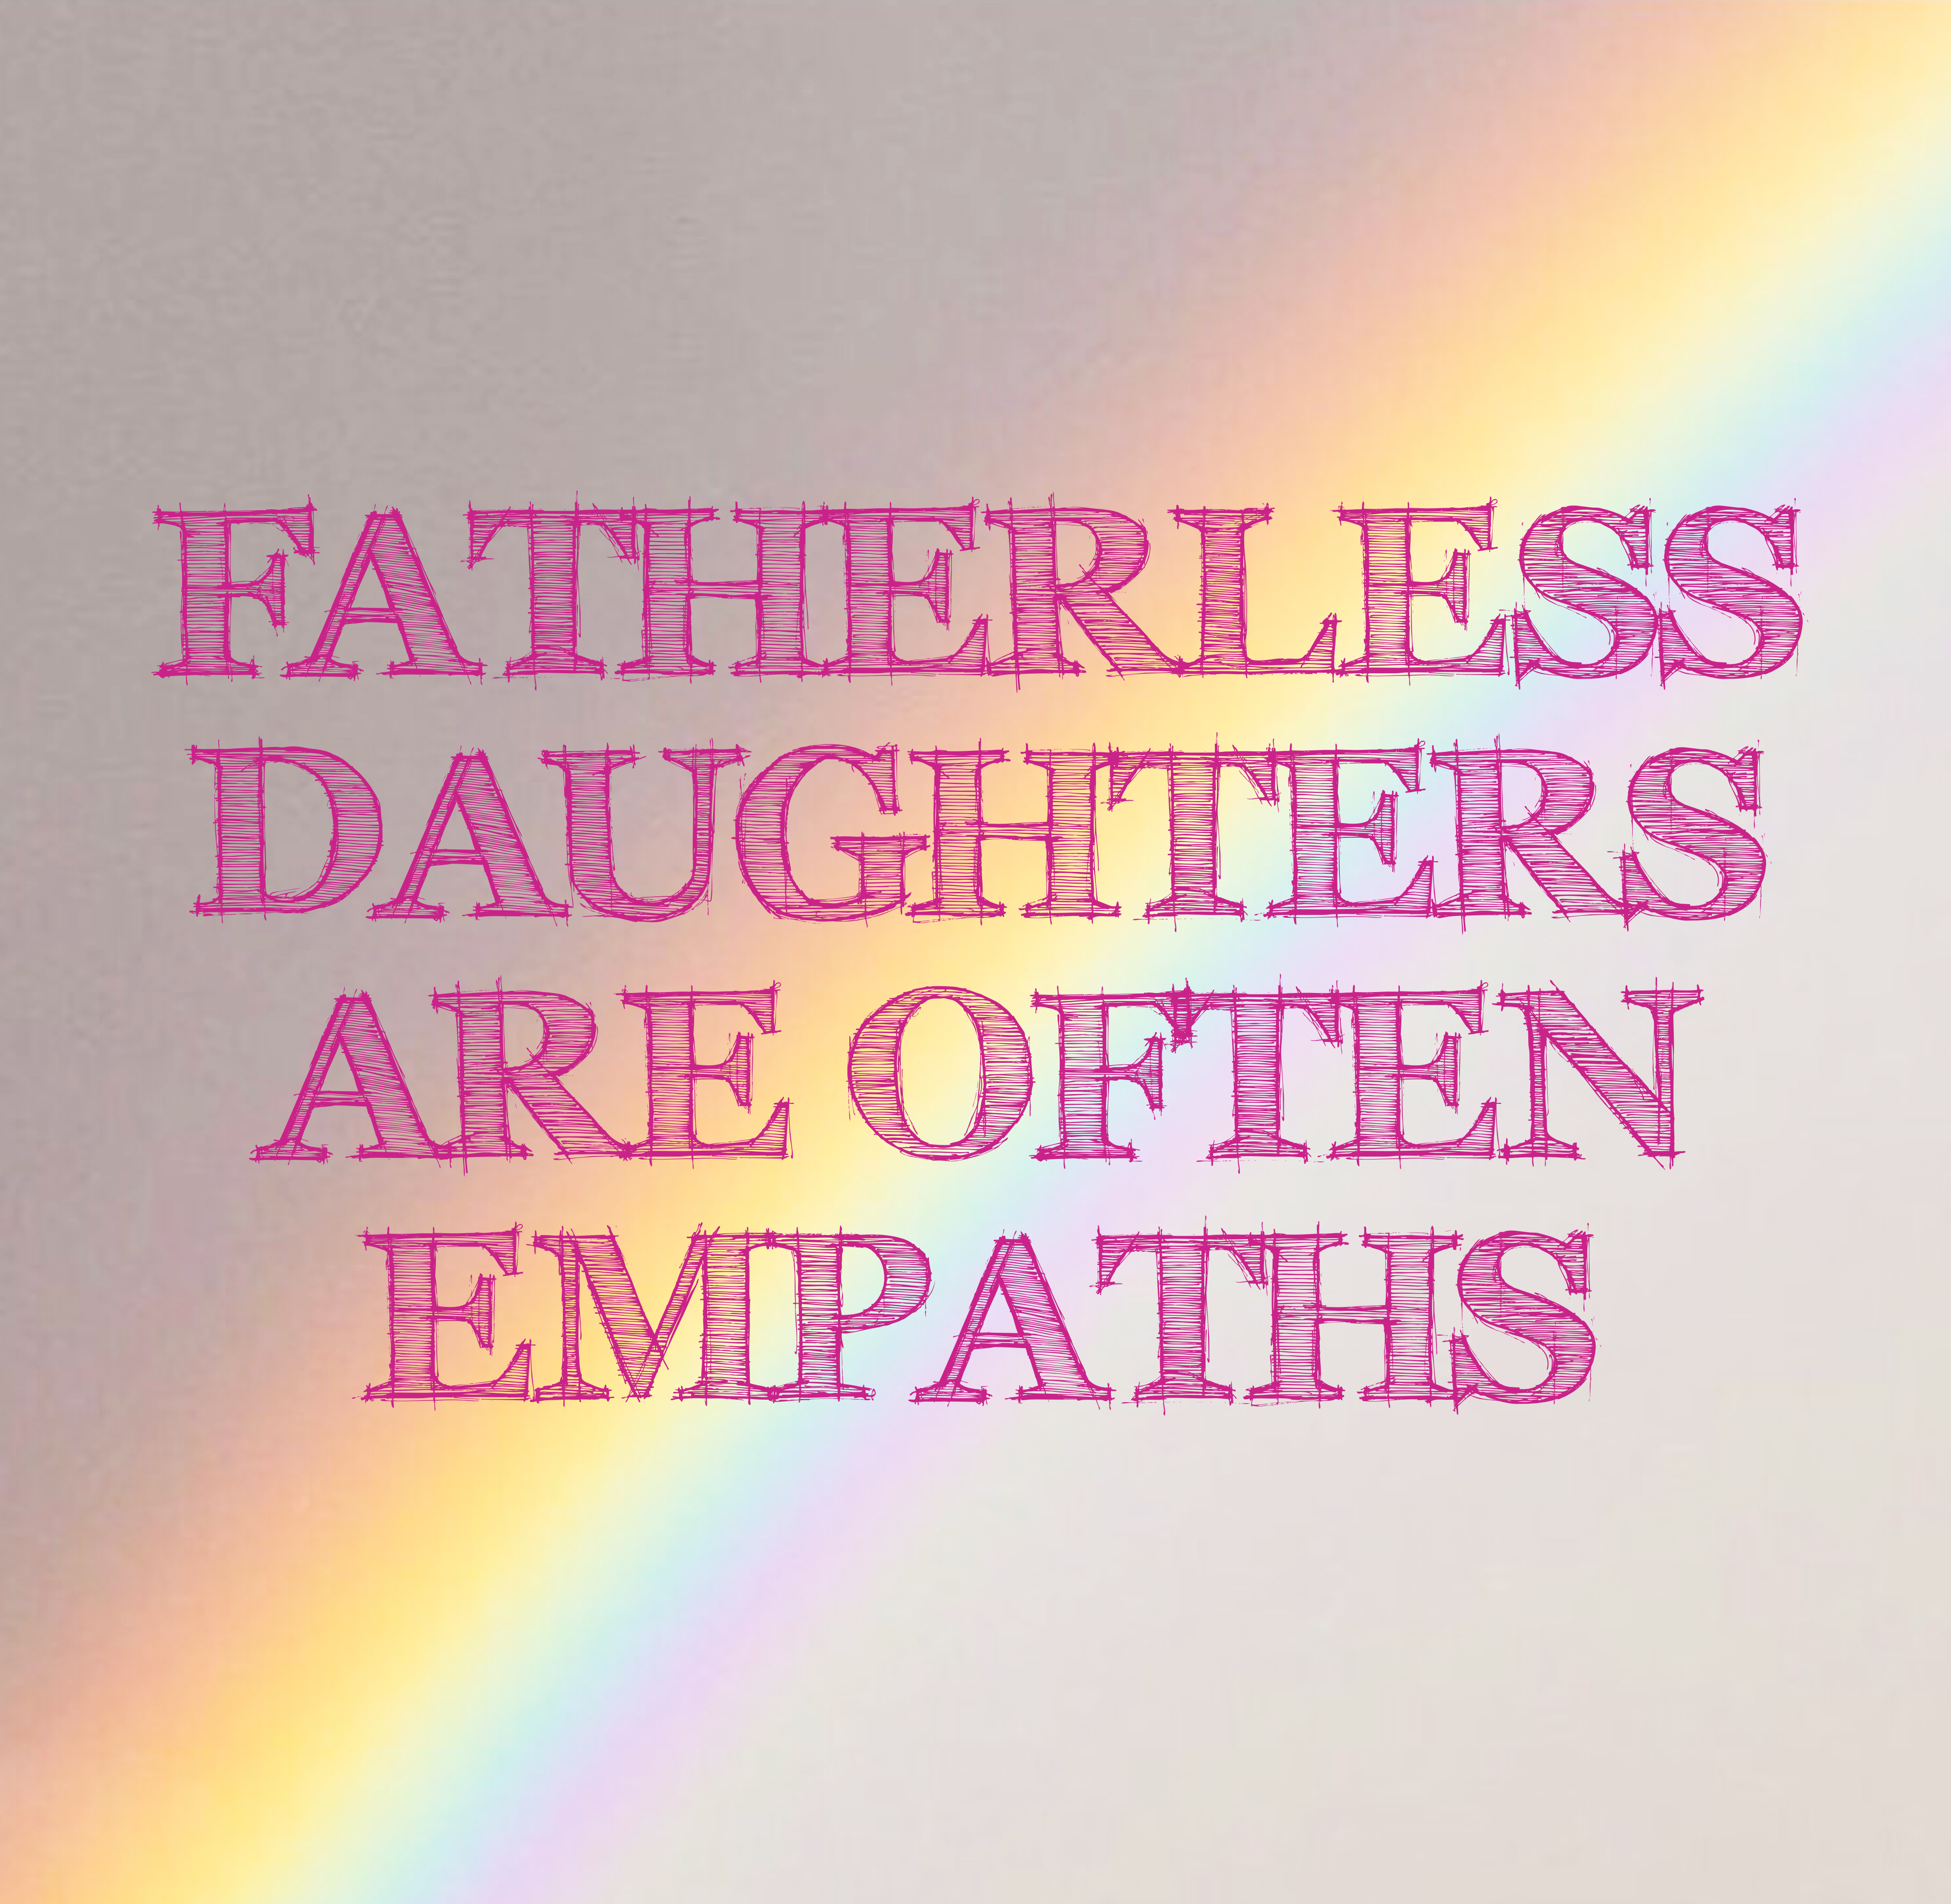 Fatherless Daughters Are Often Empaths